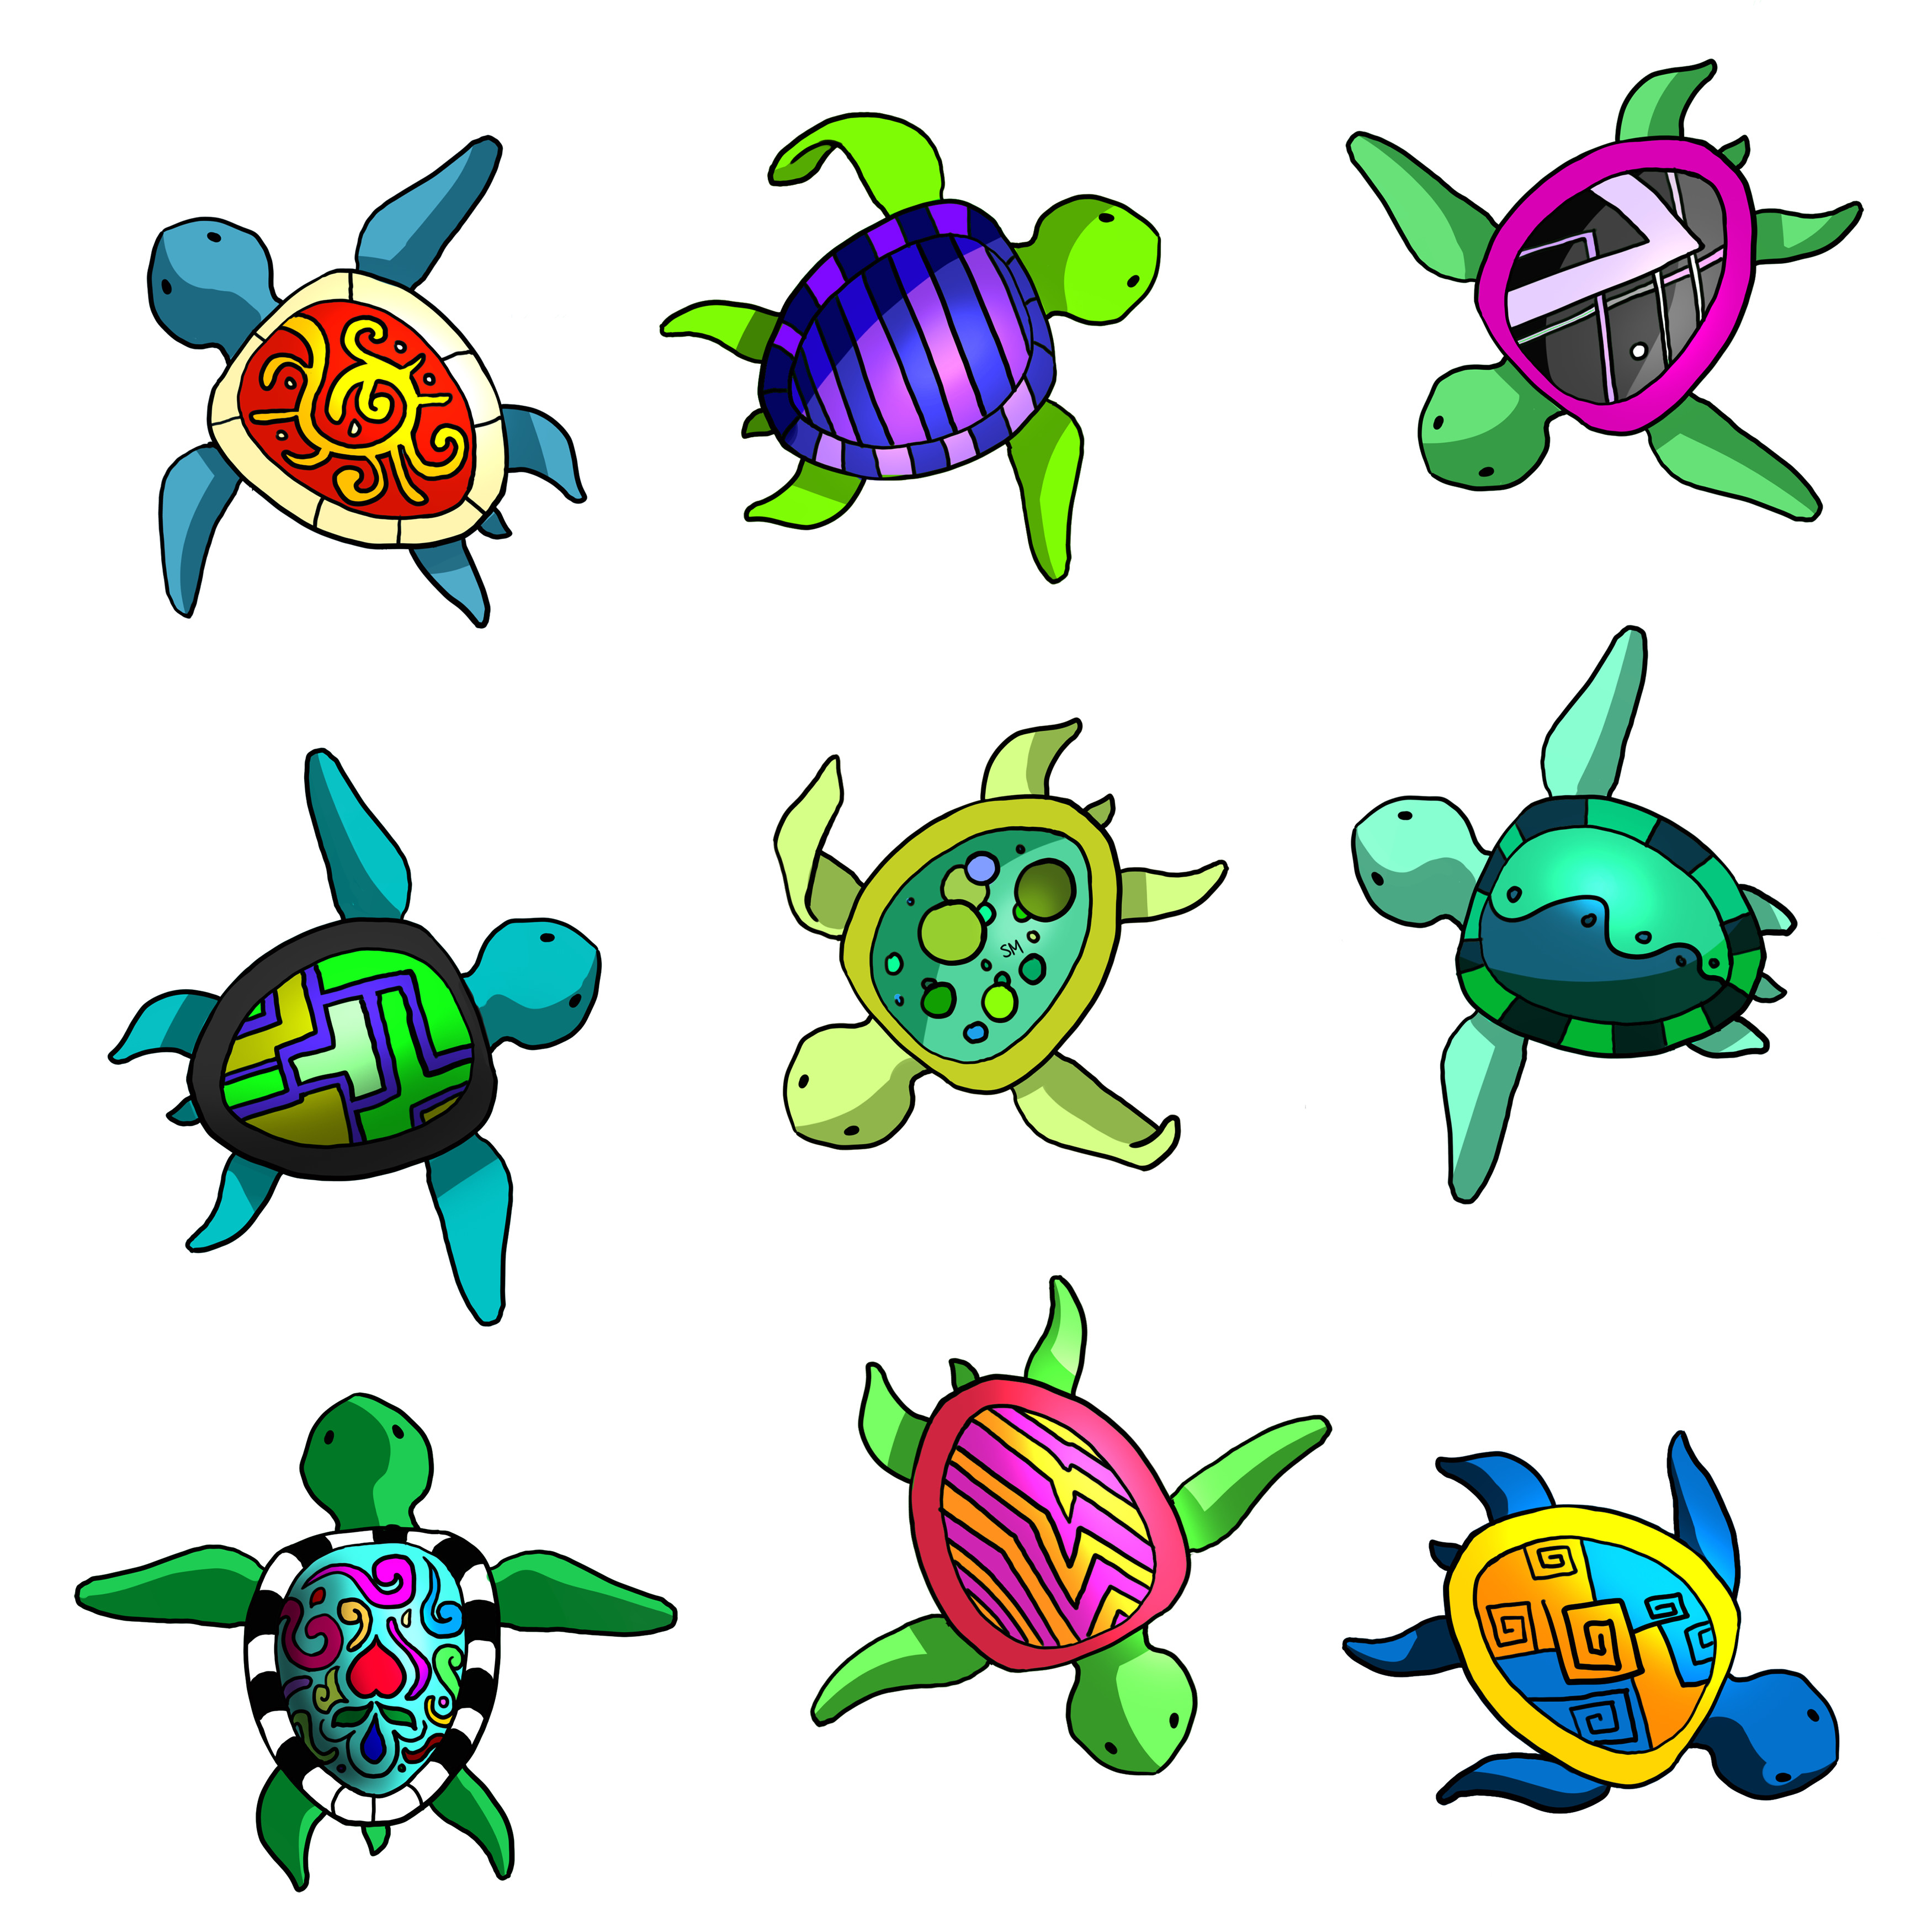 Poomki - Turtles